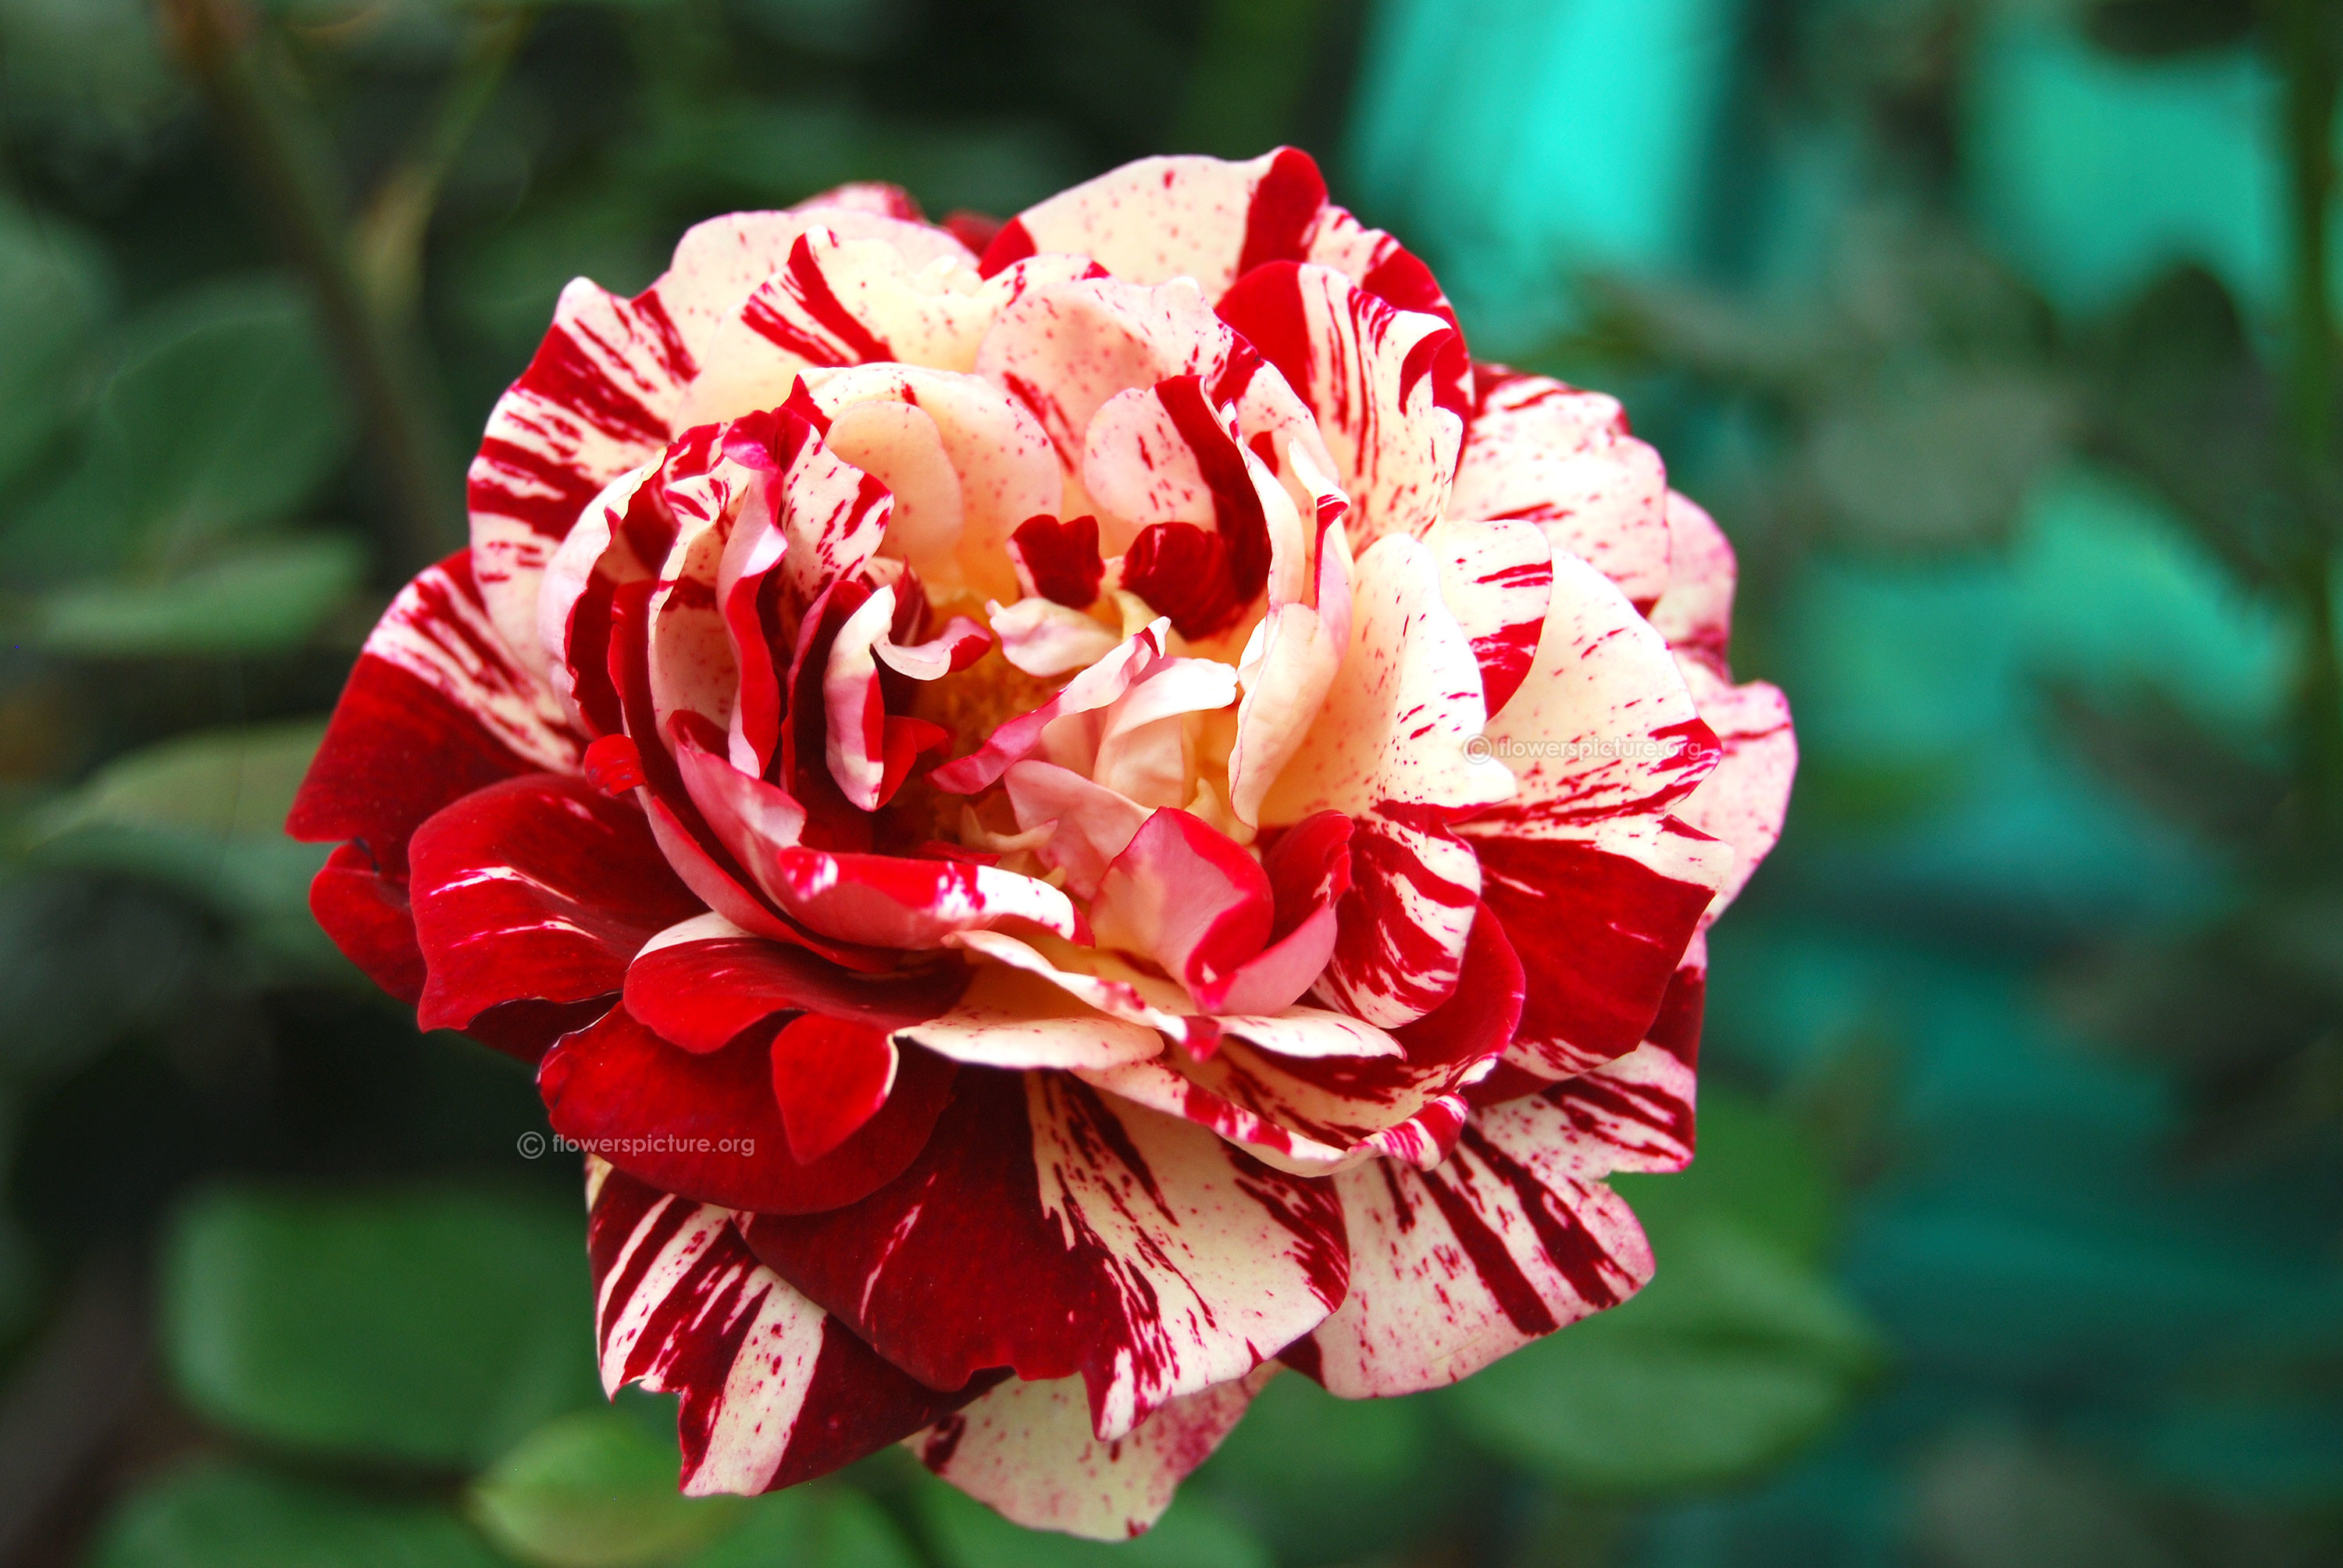 Res: 3000x2008, Red with white striped rock and roll rose